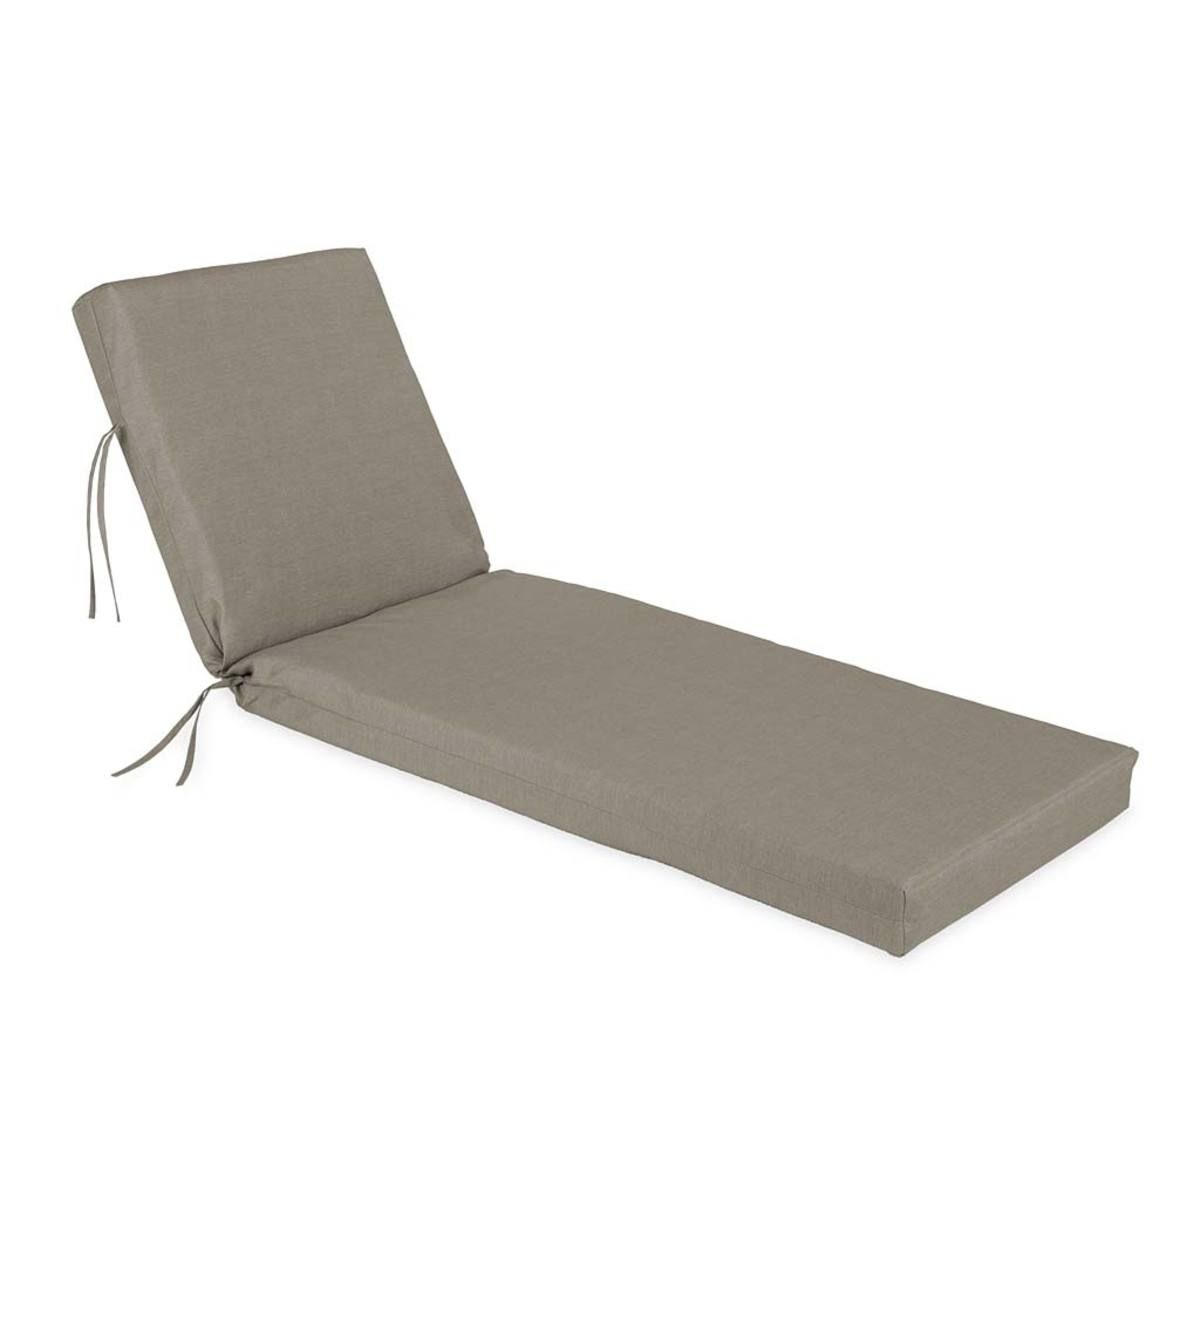 Our Knife Edge Sunbrella Classic Chaise Cushion With Ties Is Available In Different Colors To Suit Any De In 2020 Chaise Cushions Classic Cushions Indoor Outdoor Rugs